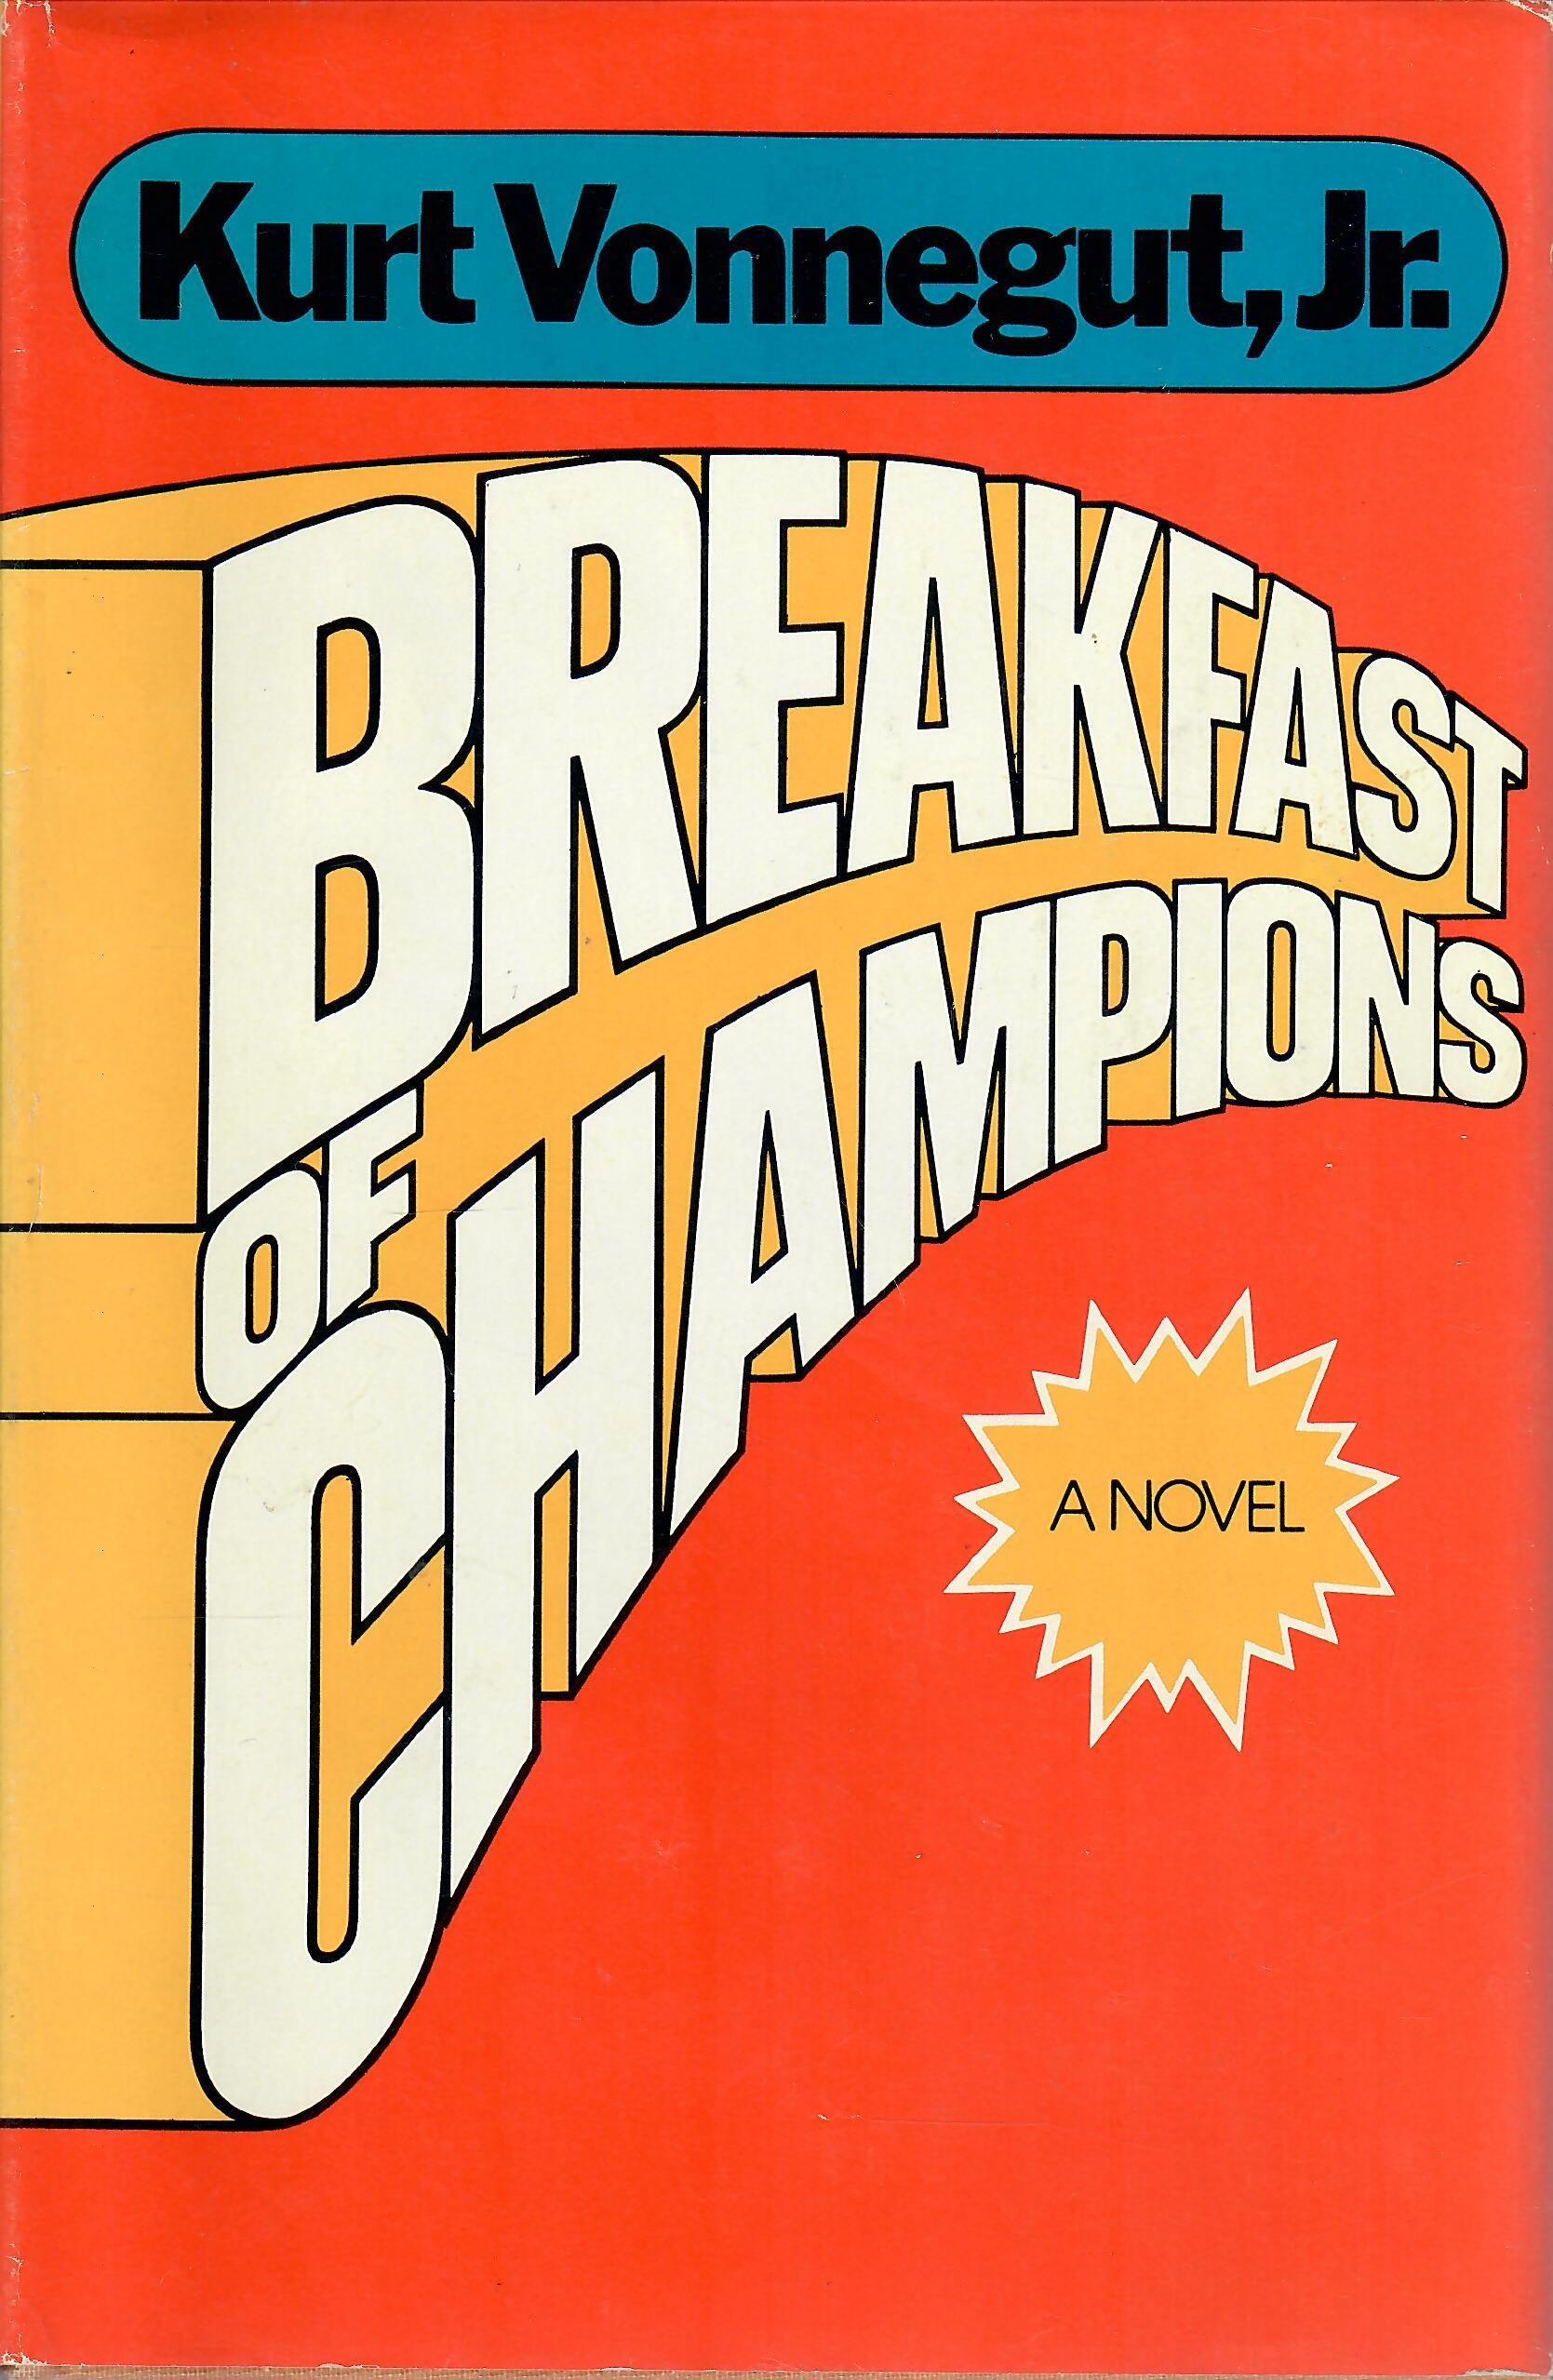 breakfast of champions Every Kurt Vonnegut Novel Ranked in Order of Relevance